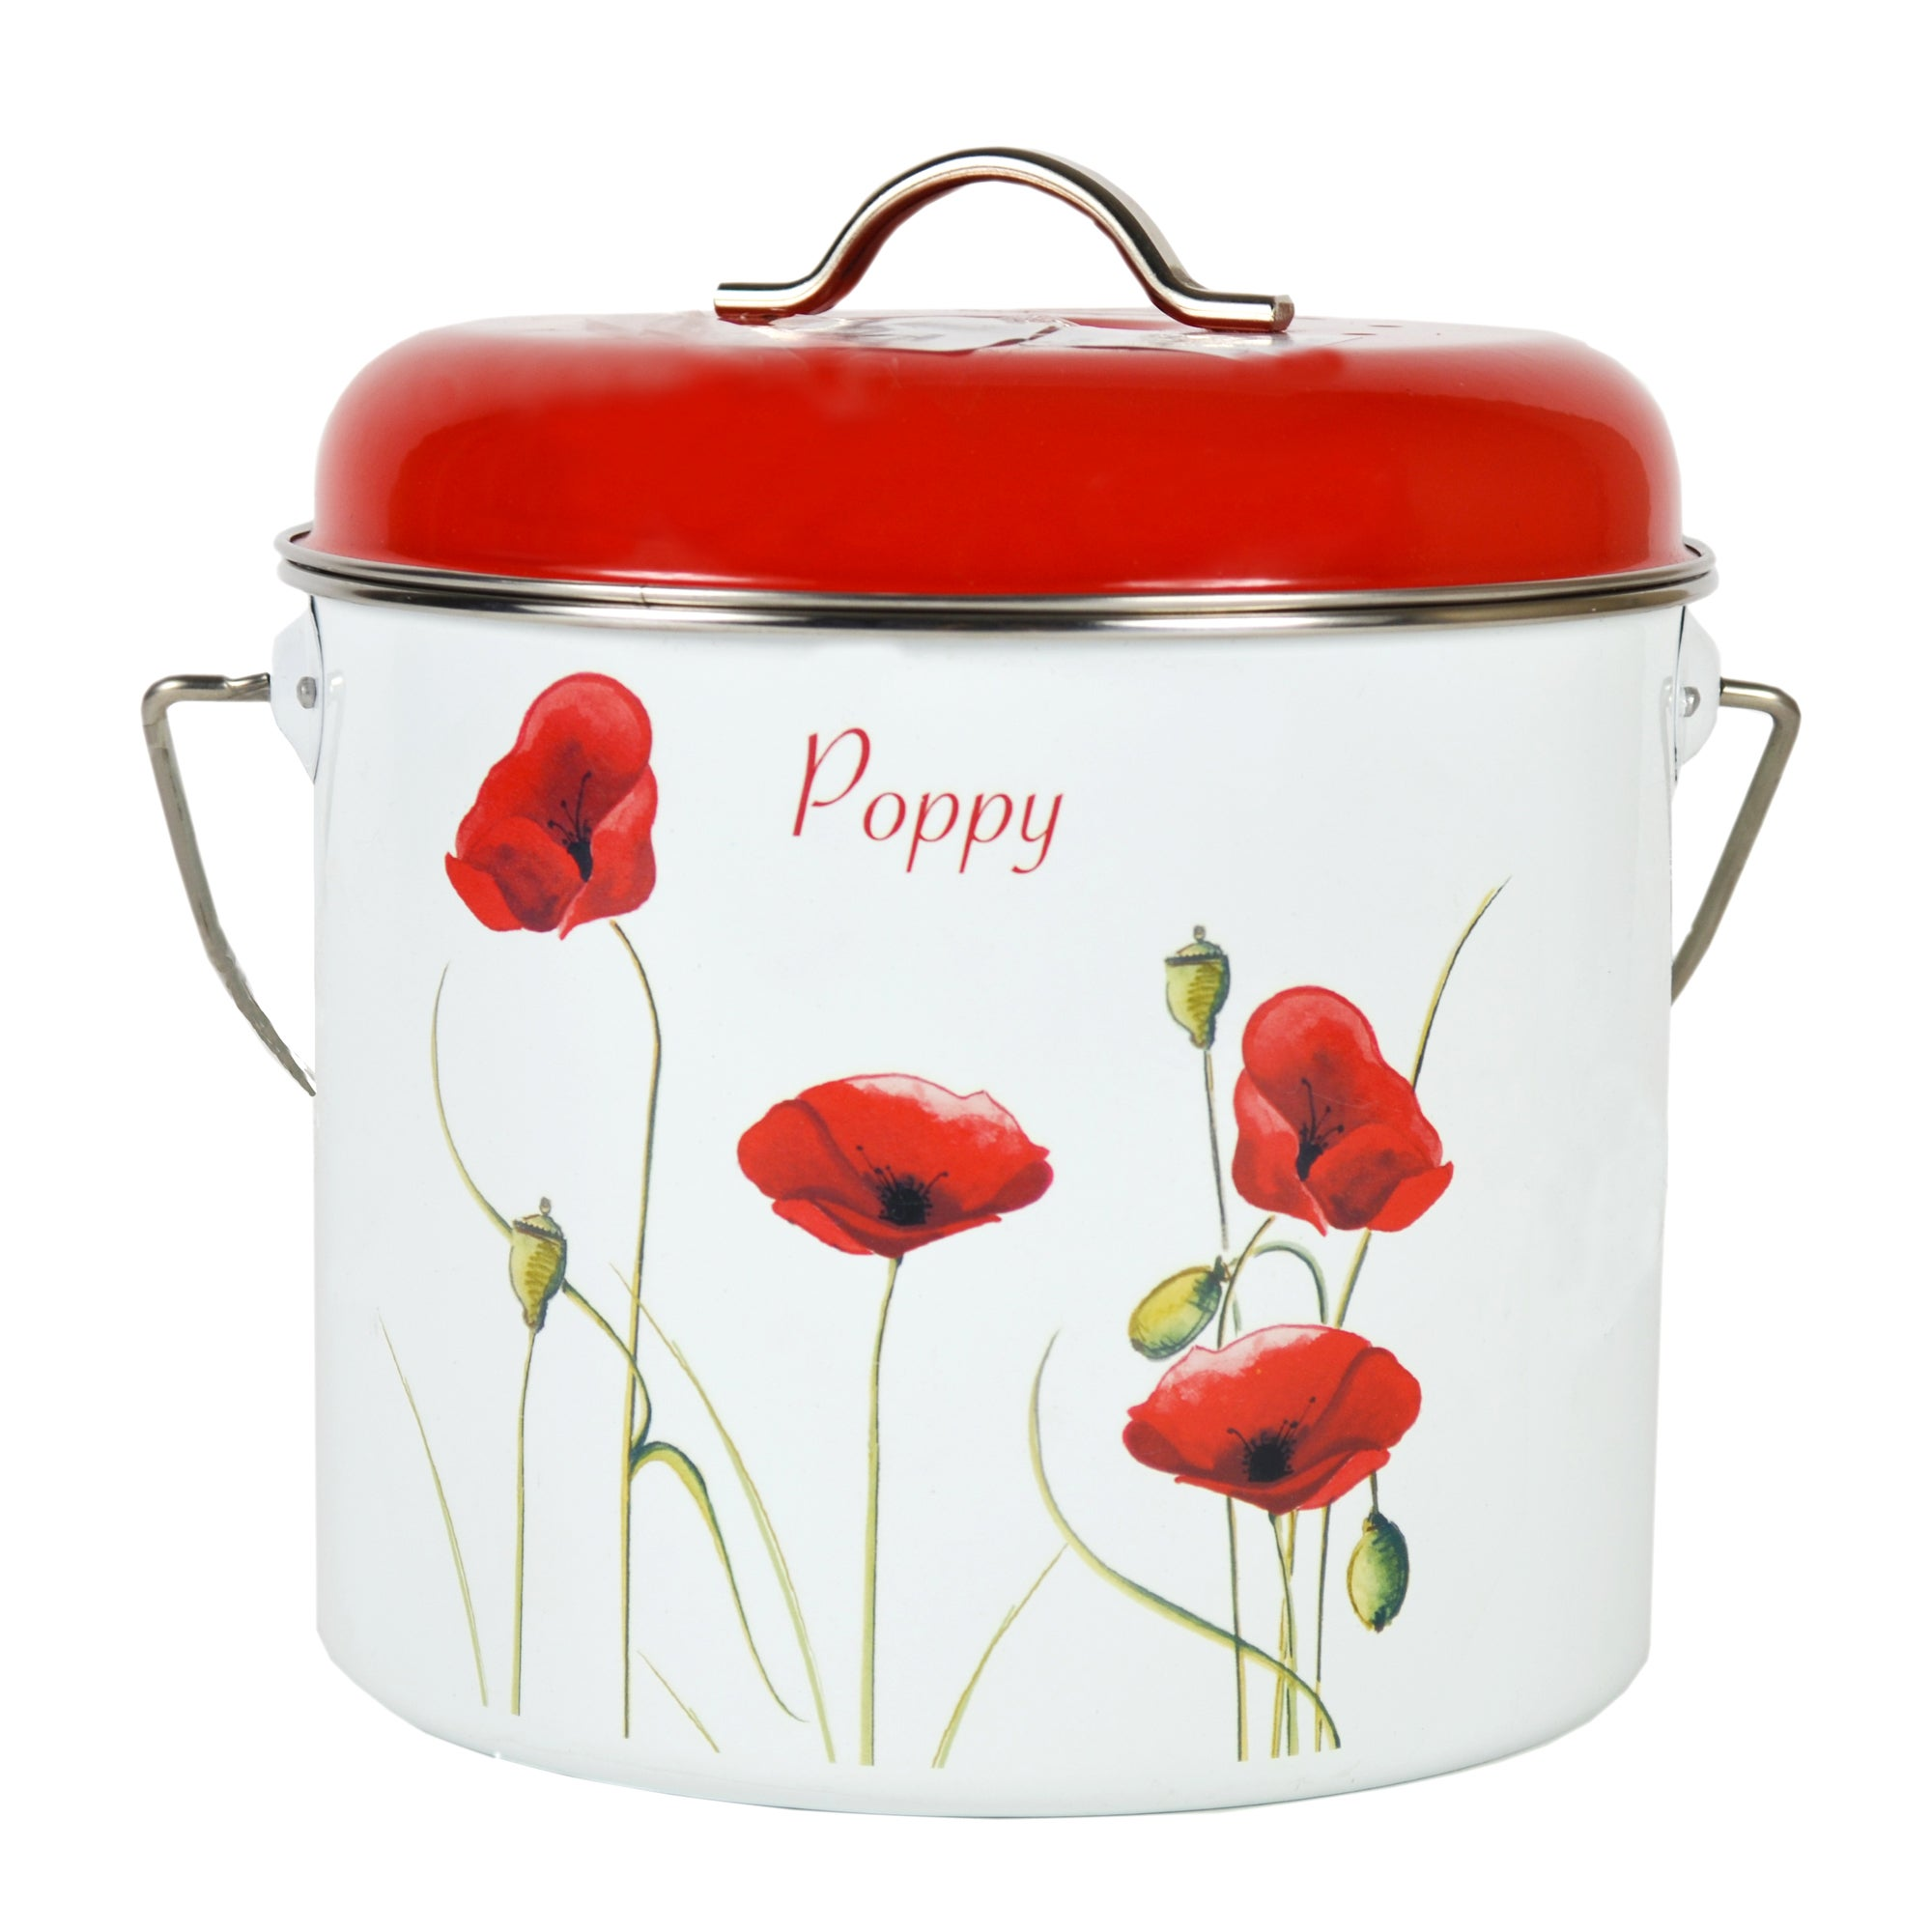 Poppy Collection Compost Bin